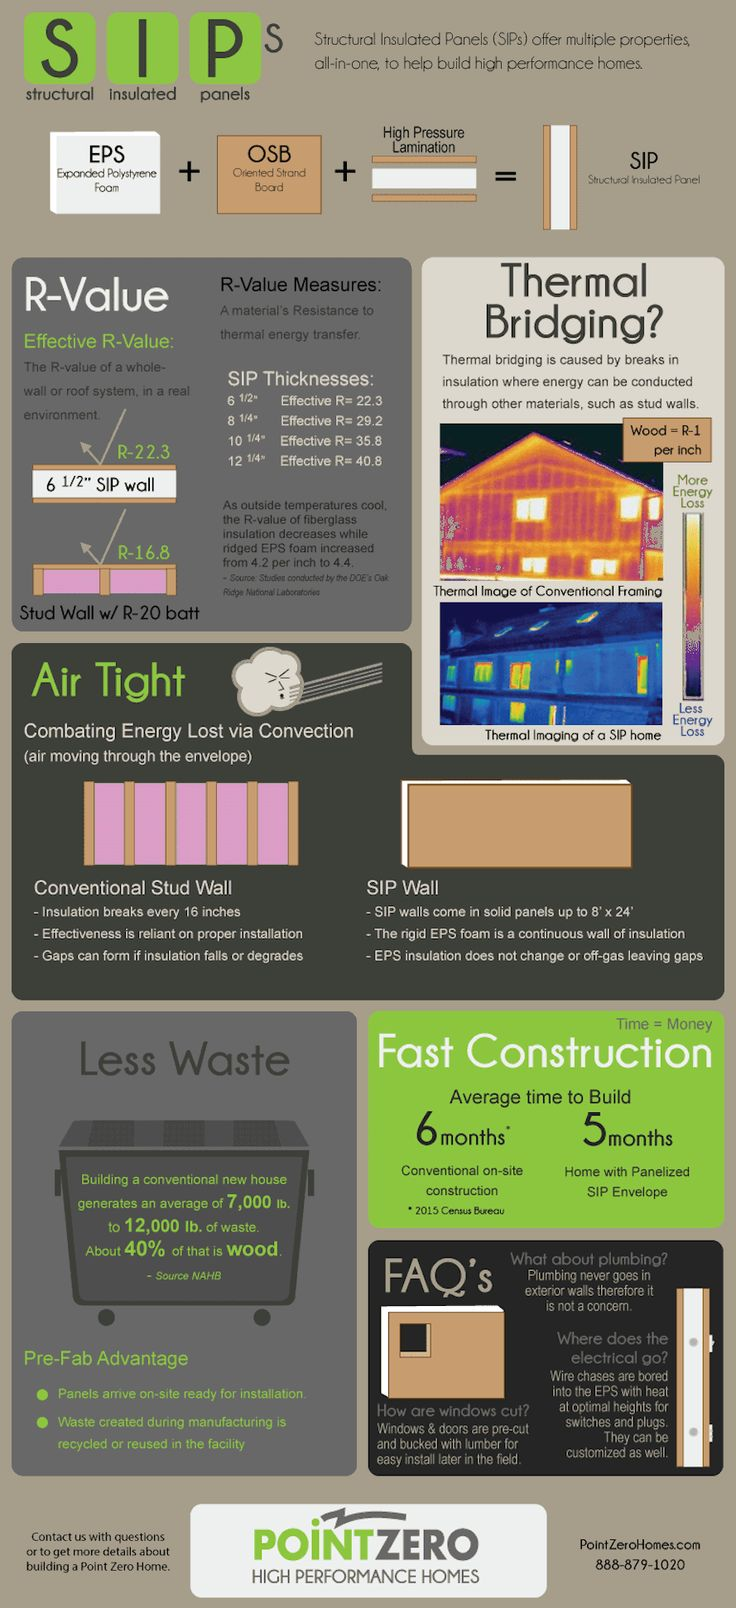 sips, Point Zero High Performance Homes, reader submitted content, infographic, thermal bridging, wood, structural insulated panel